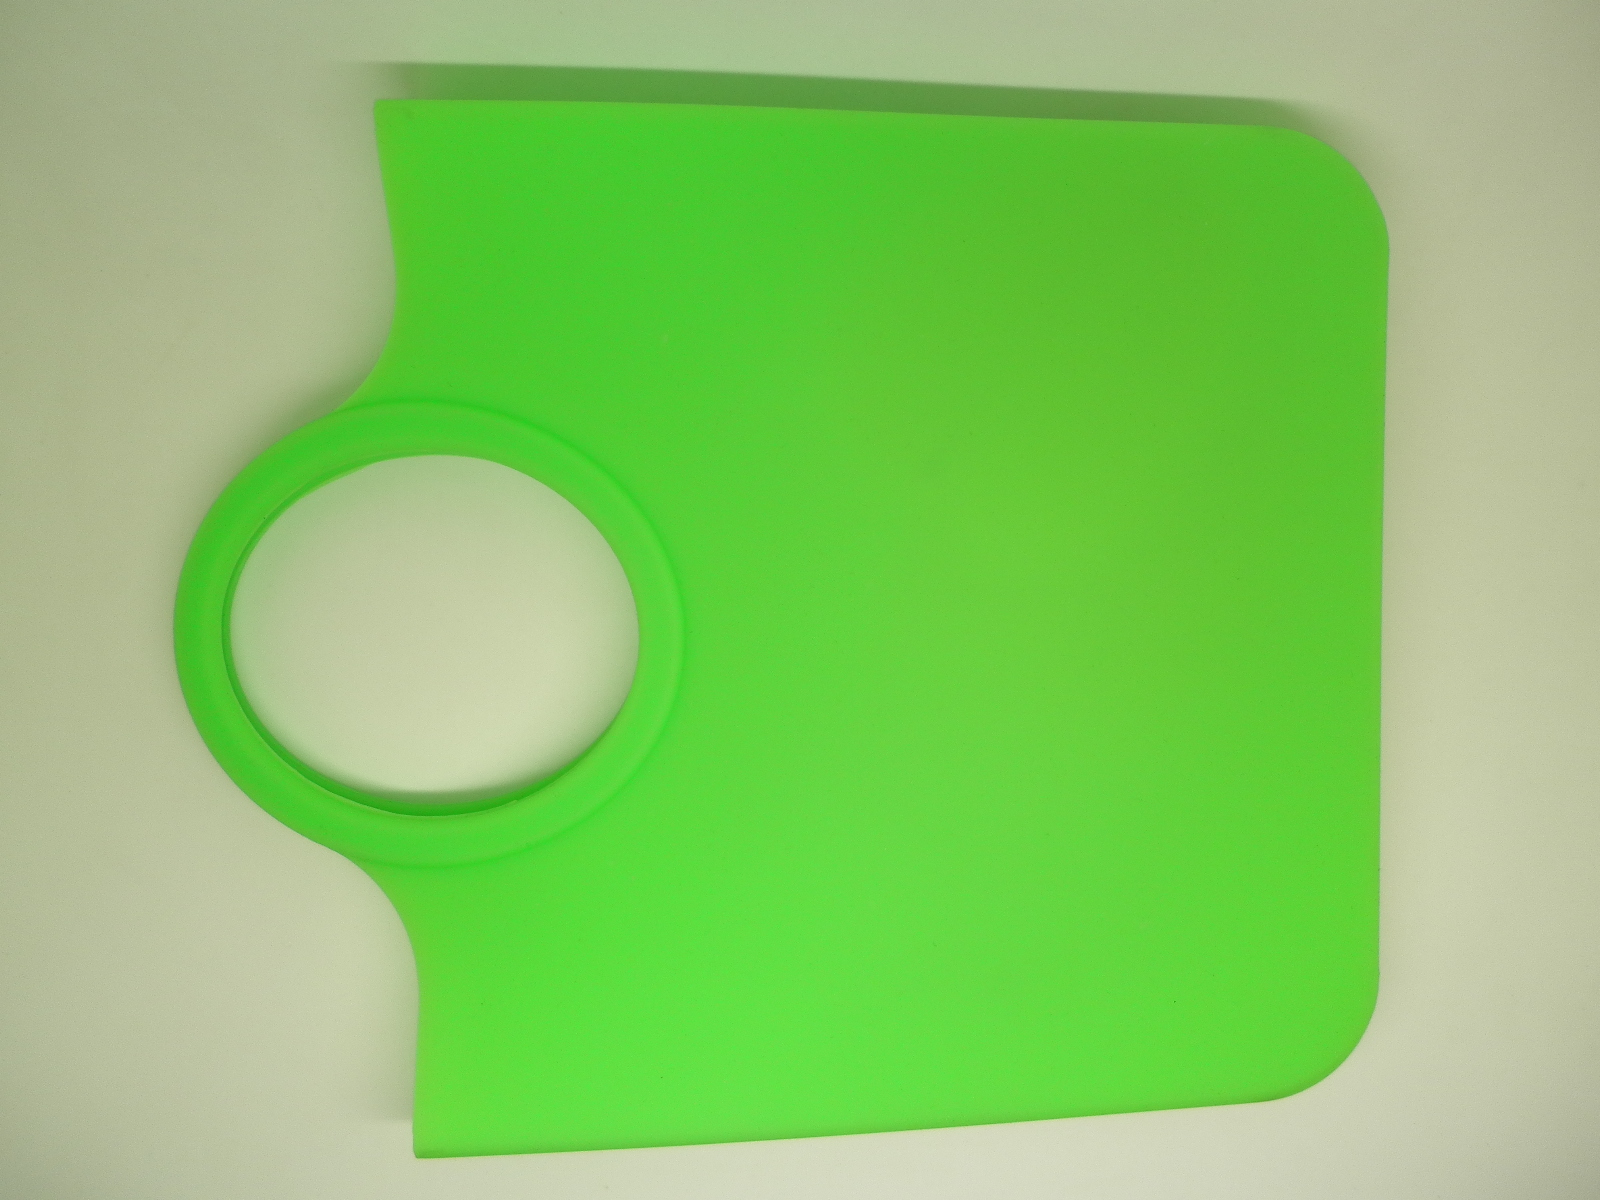 http://www.refinehksilicone.cn/data/images/product/20180417100525_664.JPG